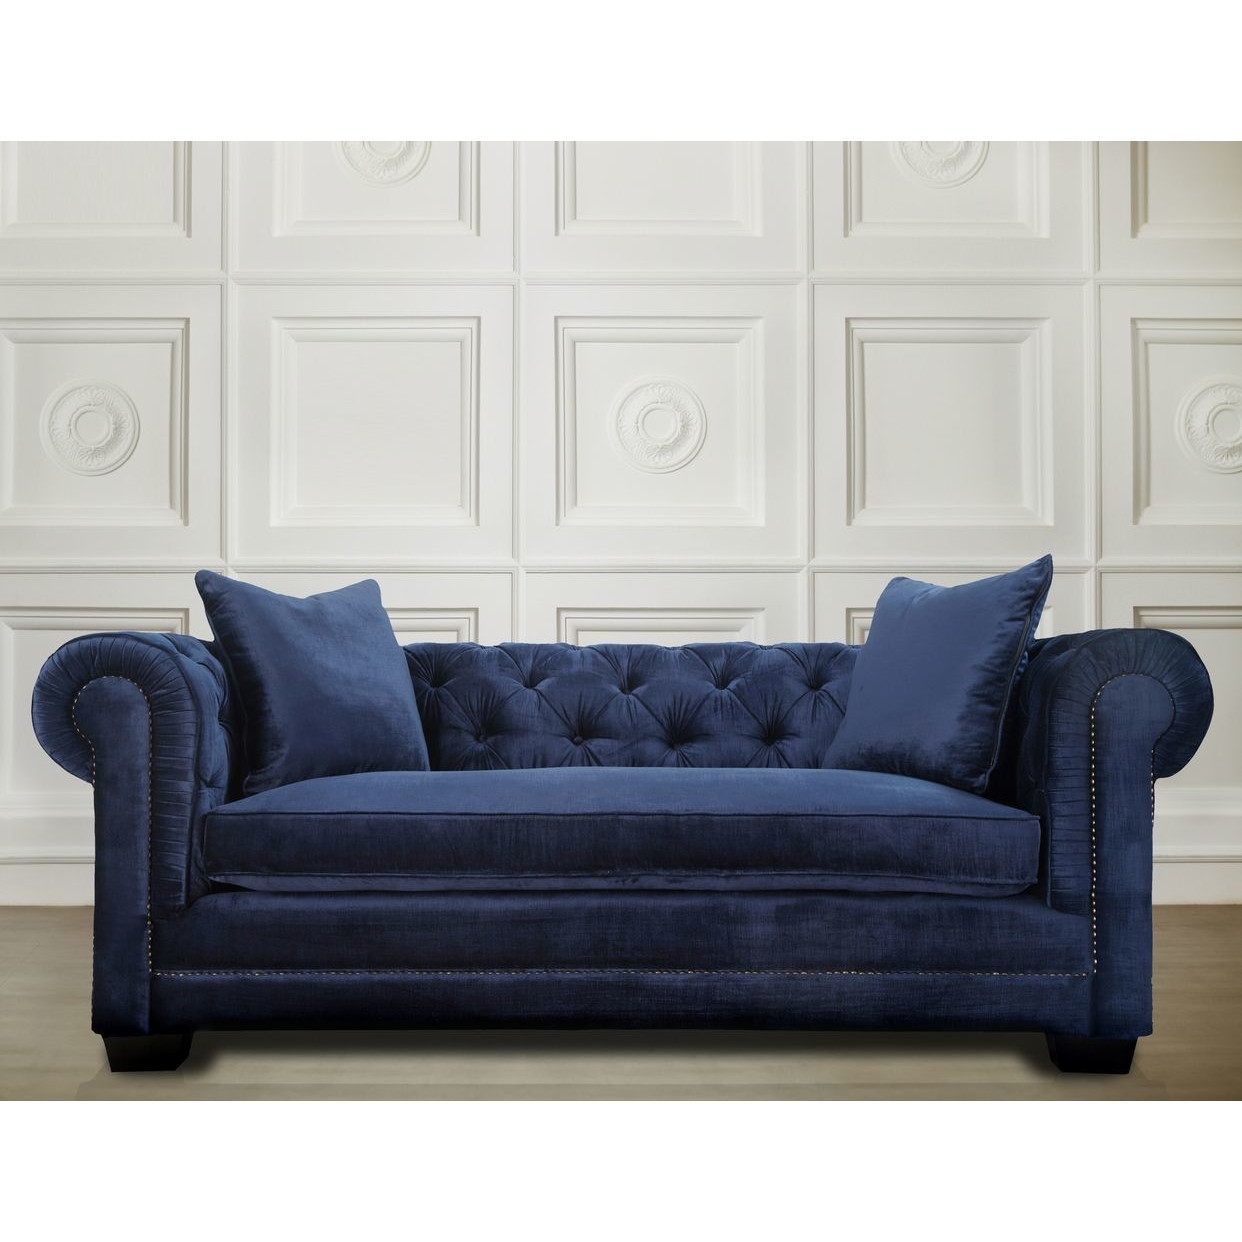 Blue Tufted Ottoman It Is Gorgeous Midnight Blue Velvet Intended For Blue Sofa Chairs (Image 5 of 15)